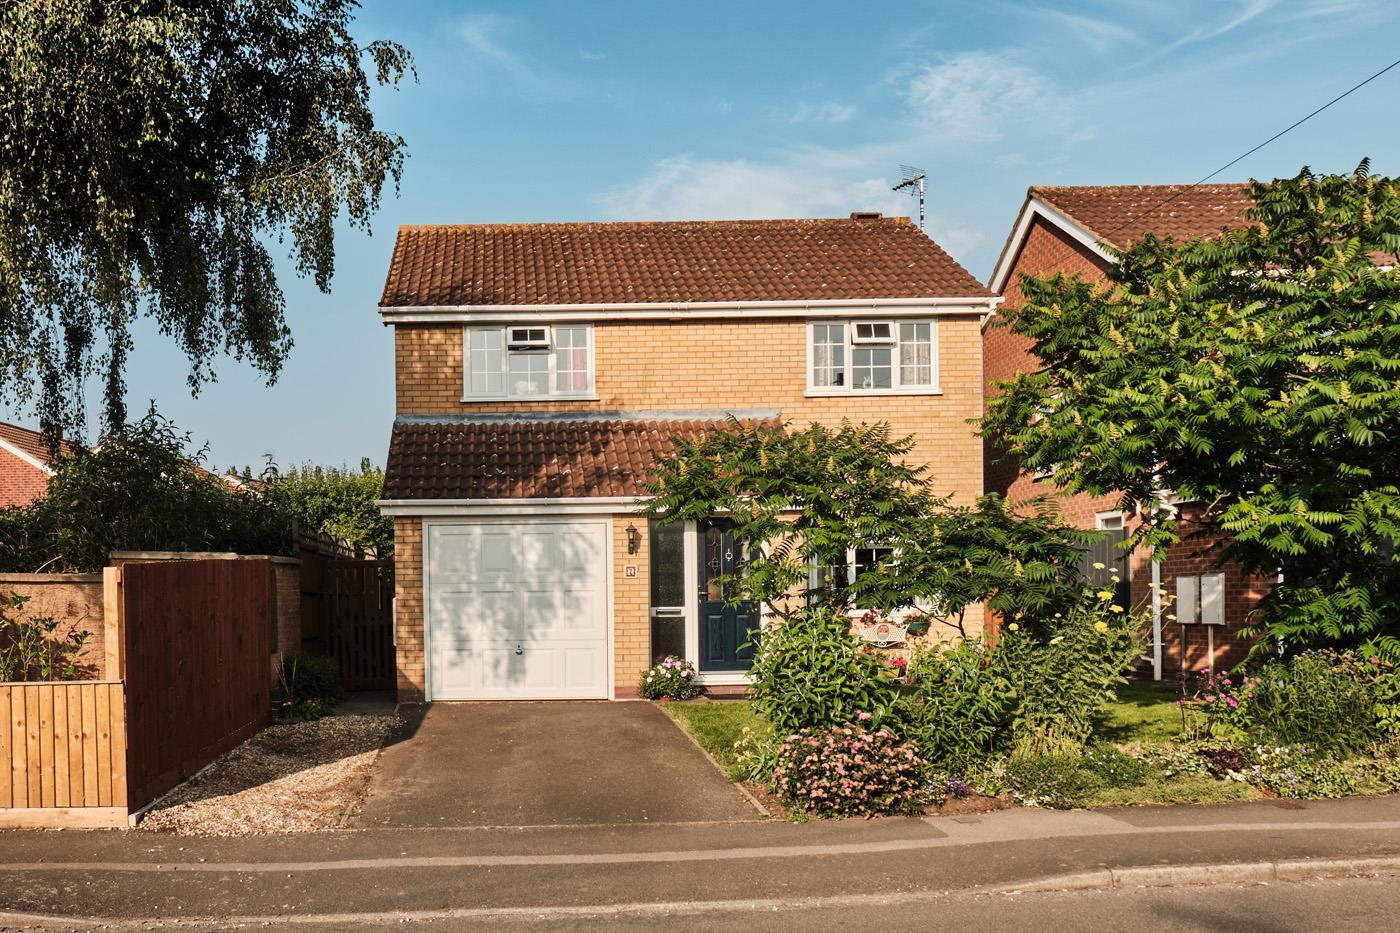 Stratfords are pleased to present this fantastic four bedroom, detached  family property in the popular village of Whetstone. The downstairs accommodation comprises of the living/dining room, kitchen, utility room and two separate conservatories over look